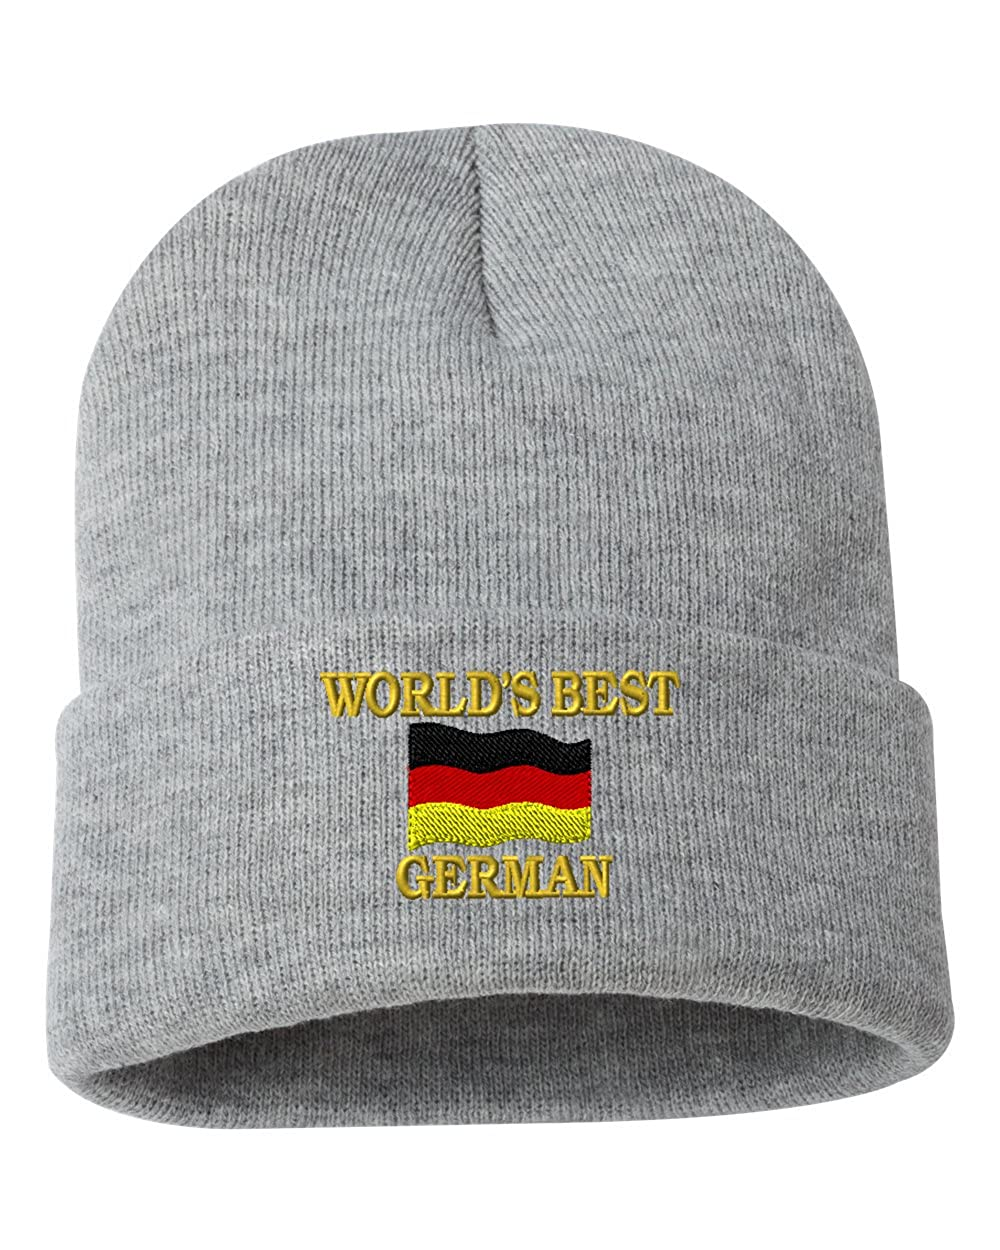 Worlds Best German Custom Personalized Embroidery Embroidered Beanie